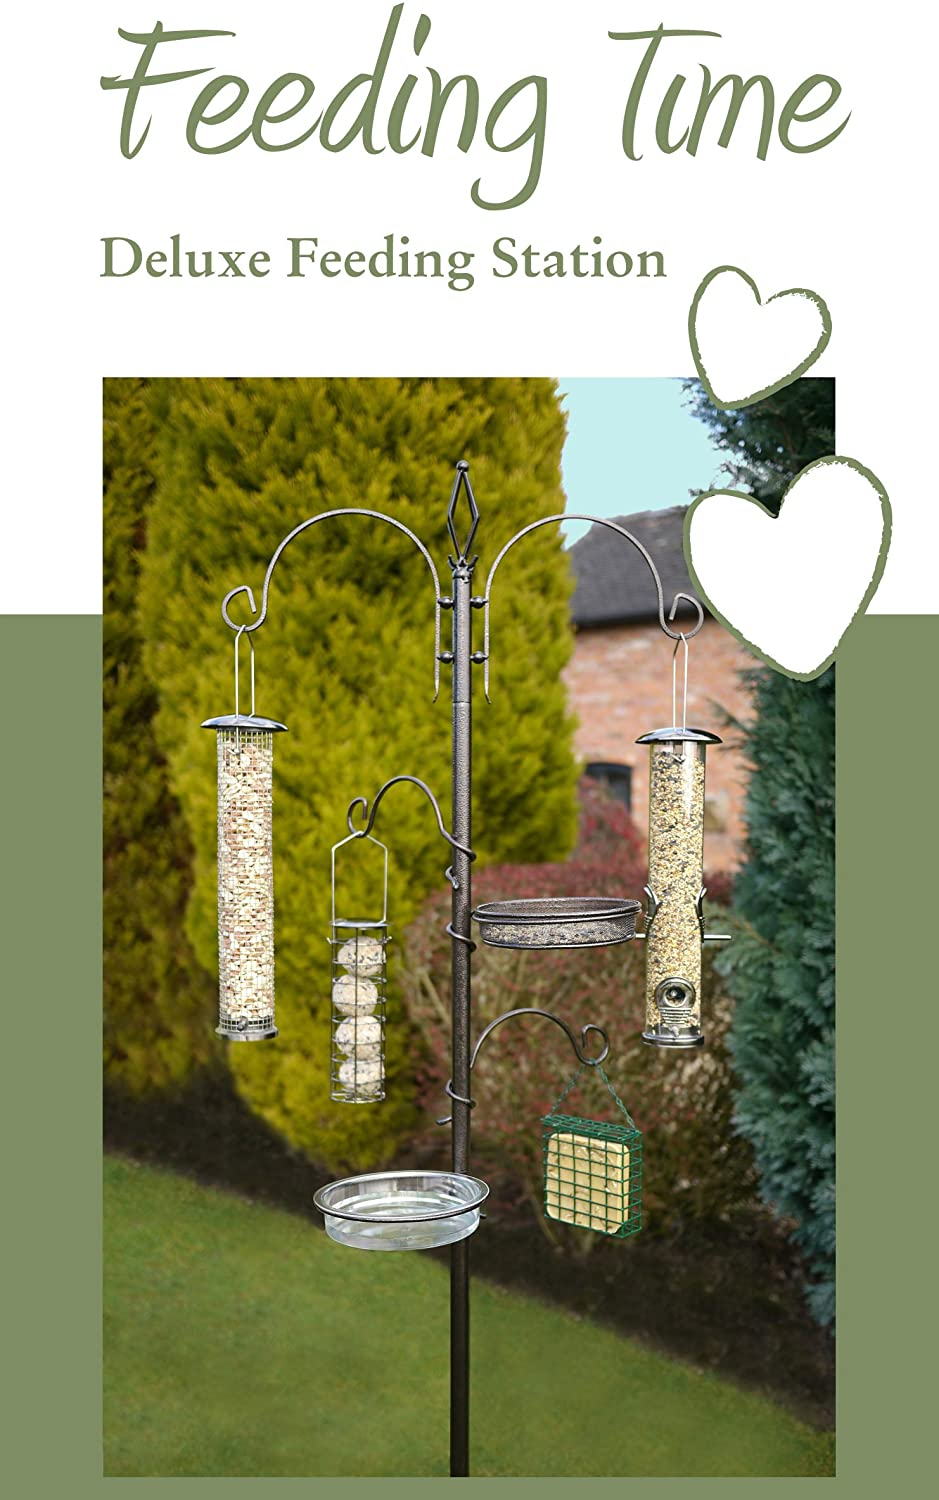 (Feeding Time) Deluxe Wild Bird Feeding Station < Please Select > RW-25525